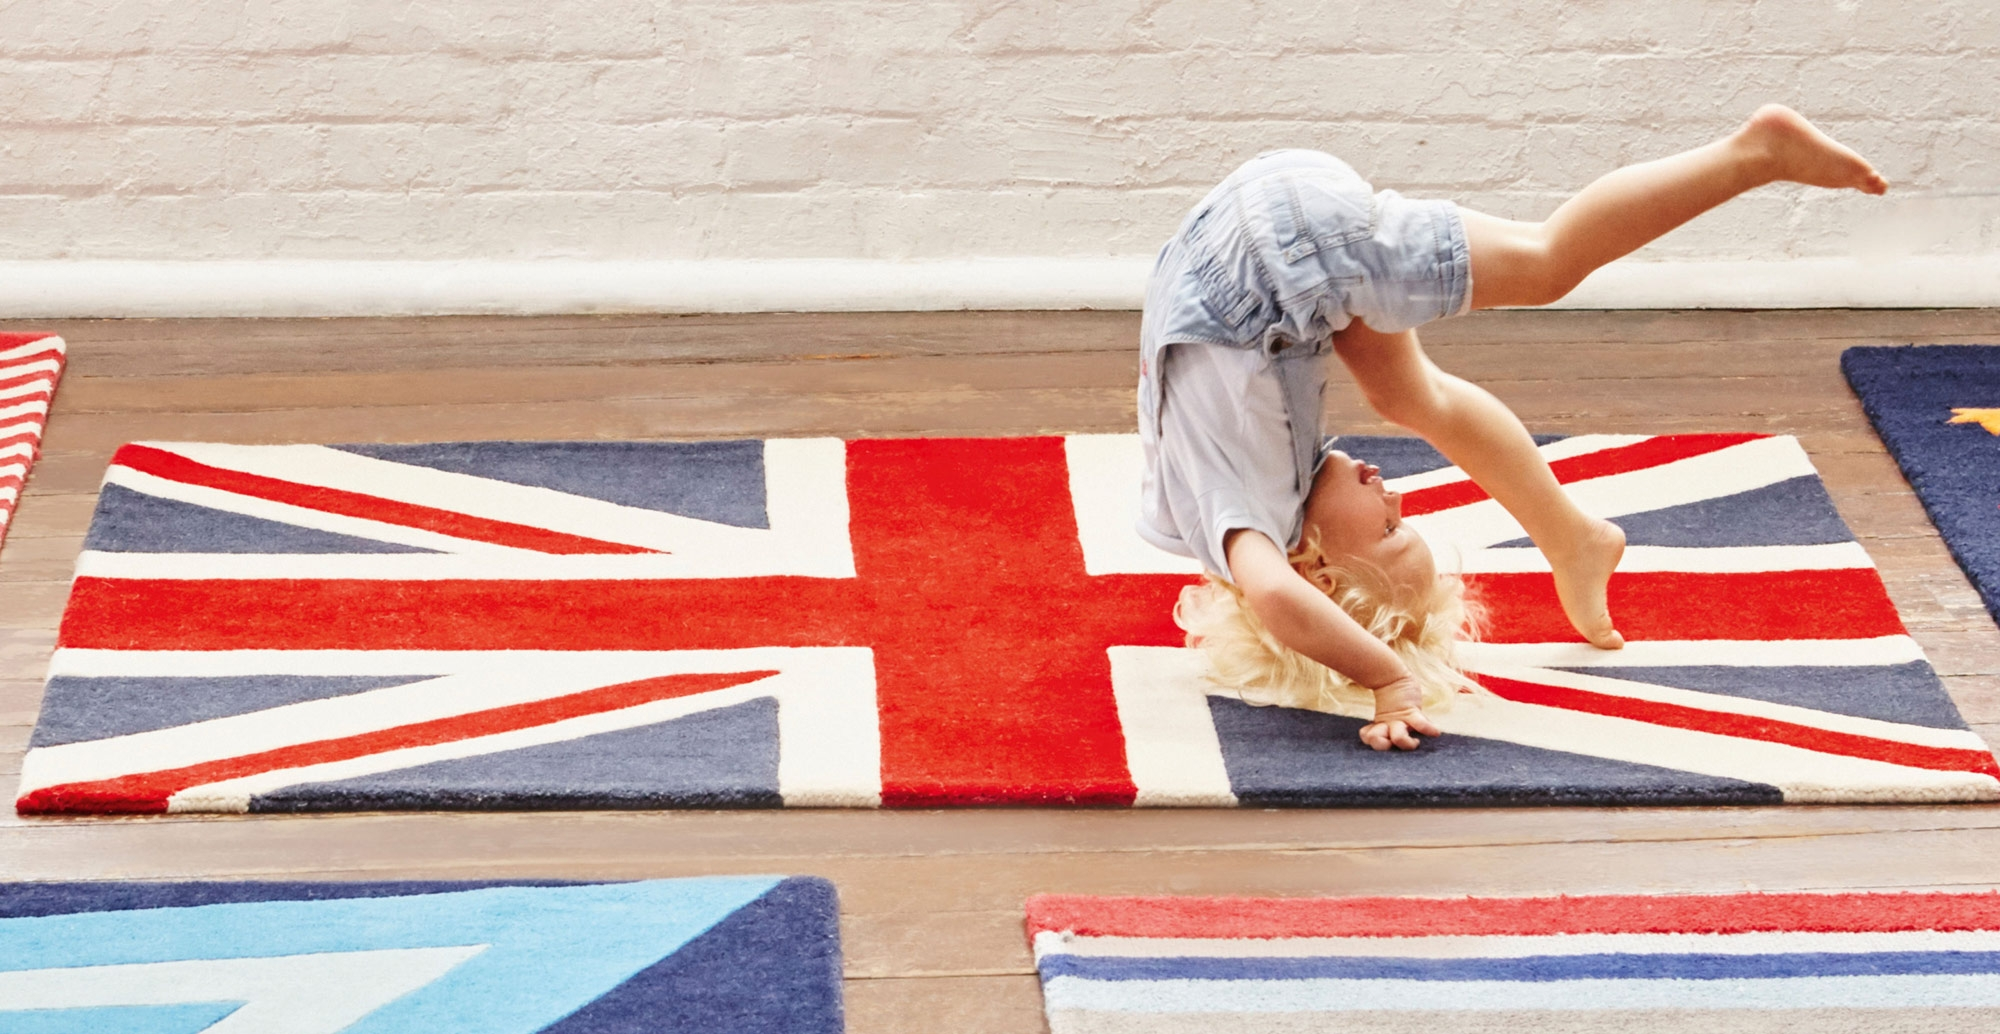 Union Jack Rug Gltc Regarding Union Jack Rugs (Photo 11 of 15)